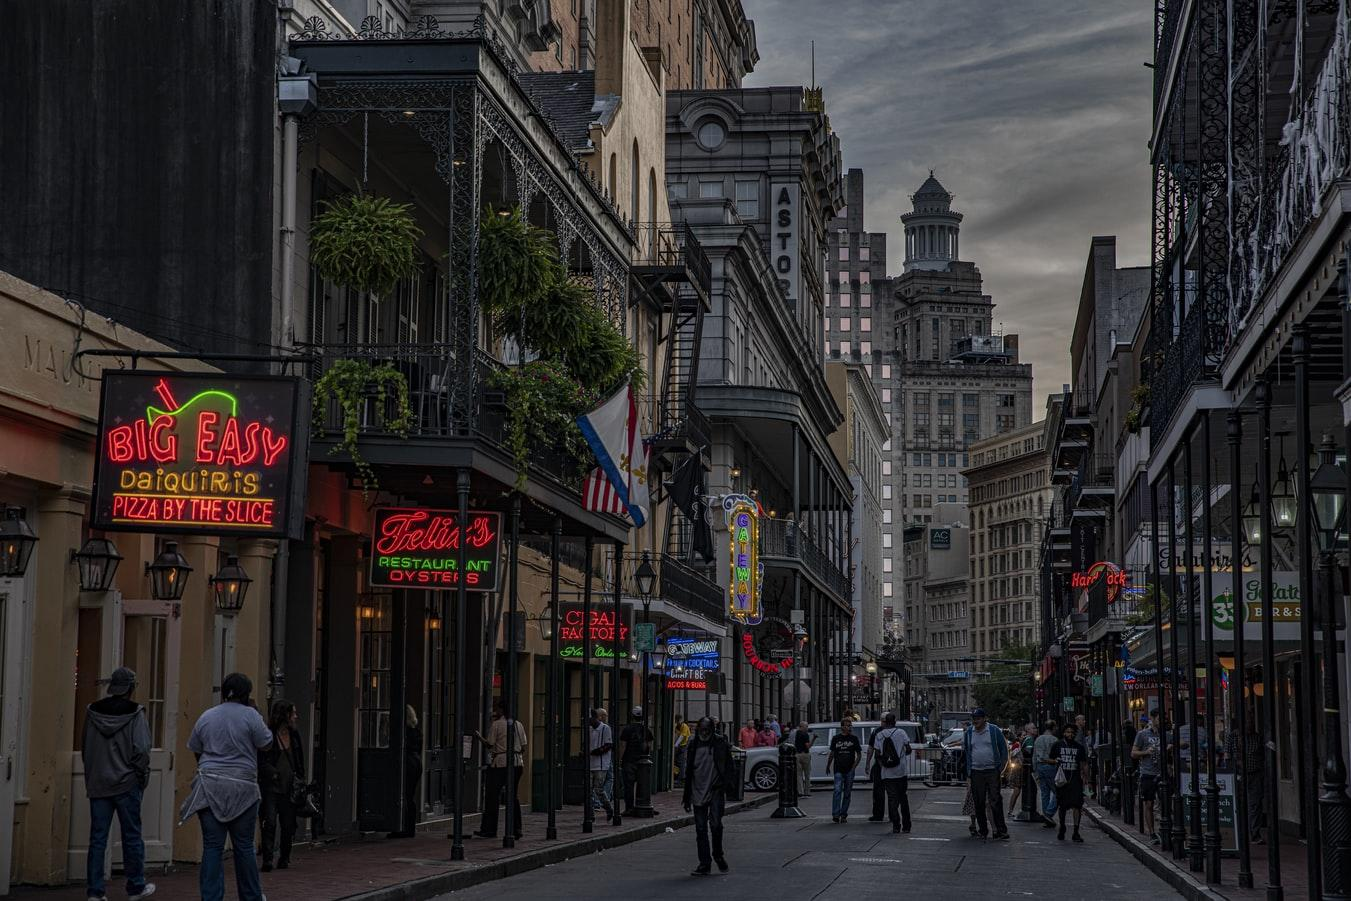 A view of a busy street in New Orleans at night.